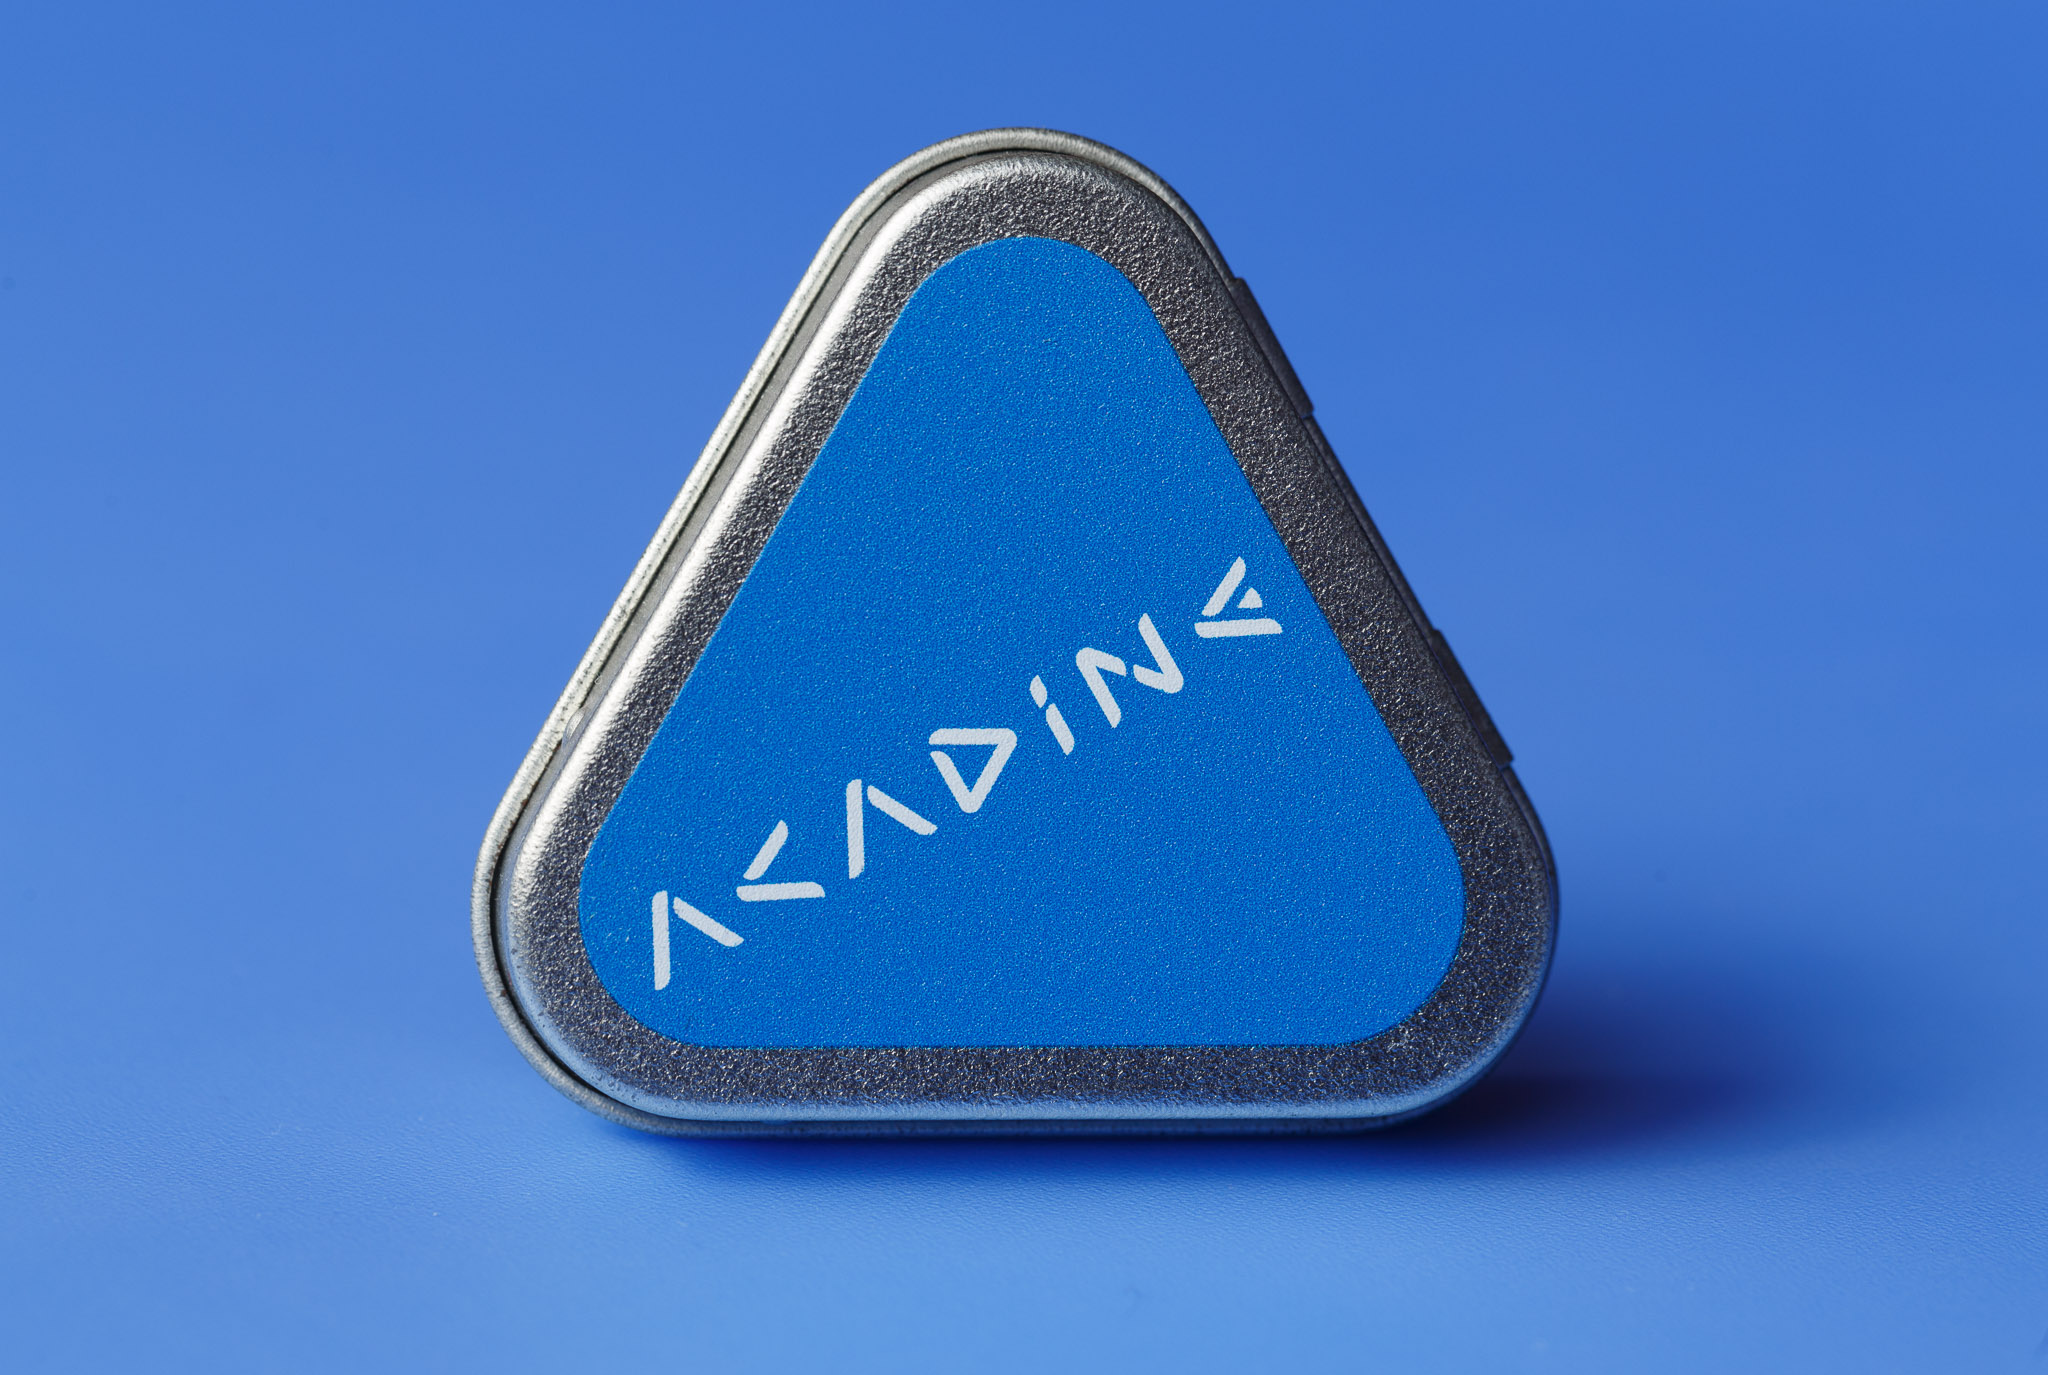 Acadine Technologies is adapting Mozilla's Firefox OS for use in phones, watches and other devices.